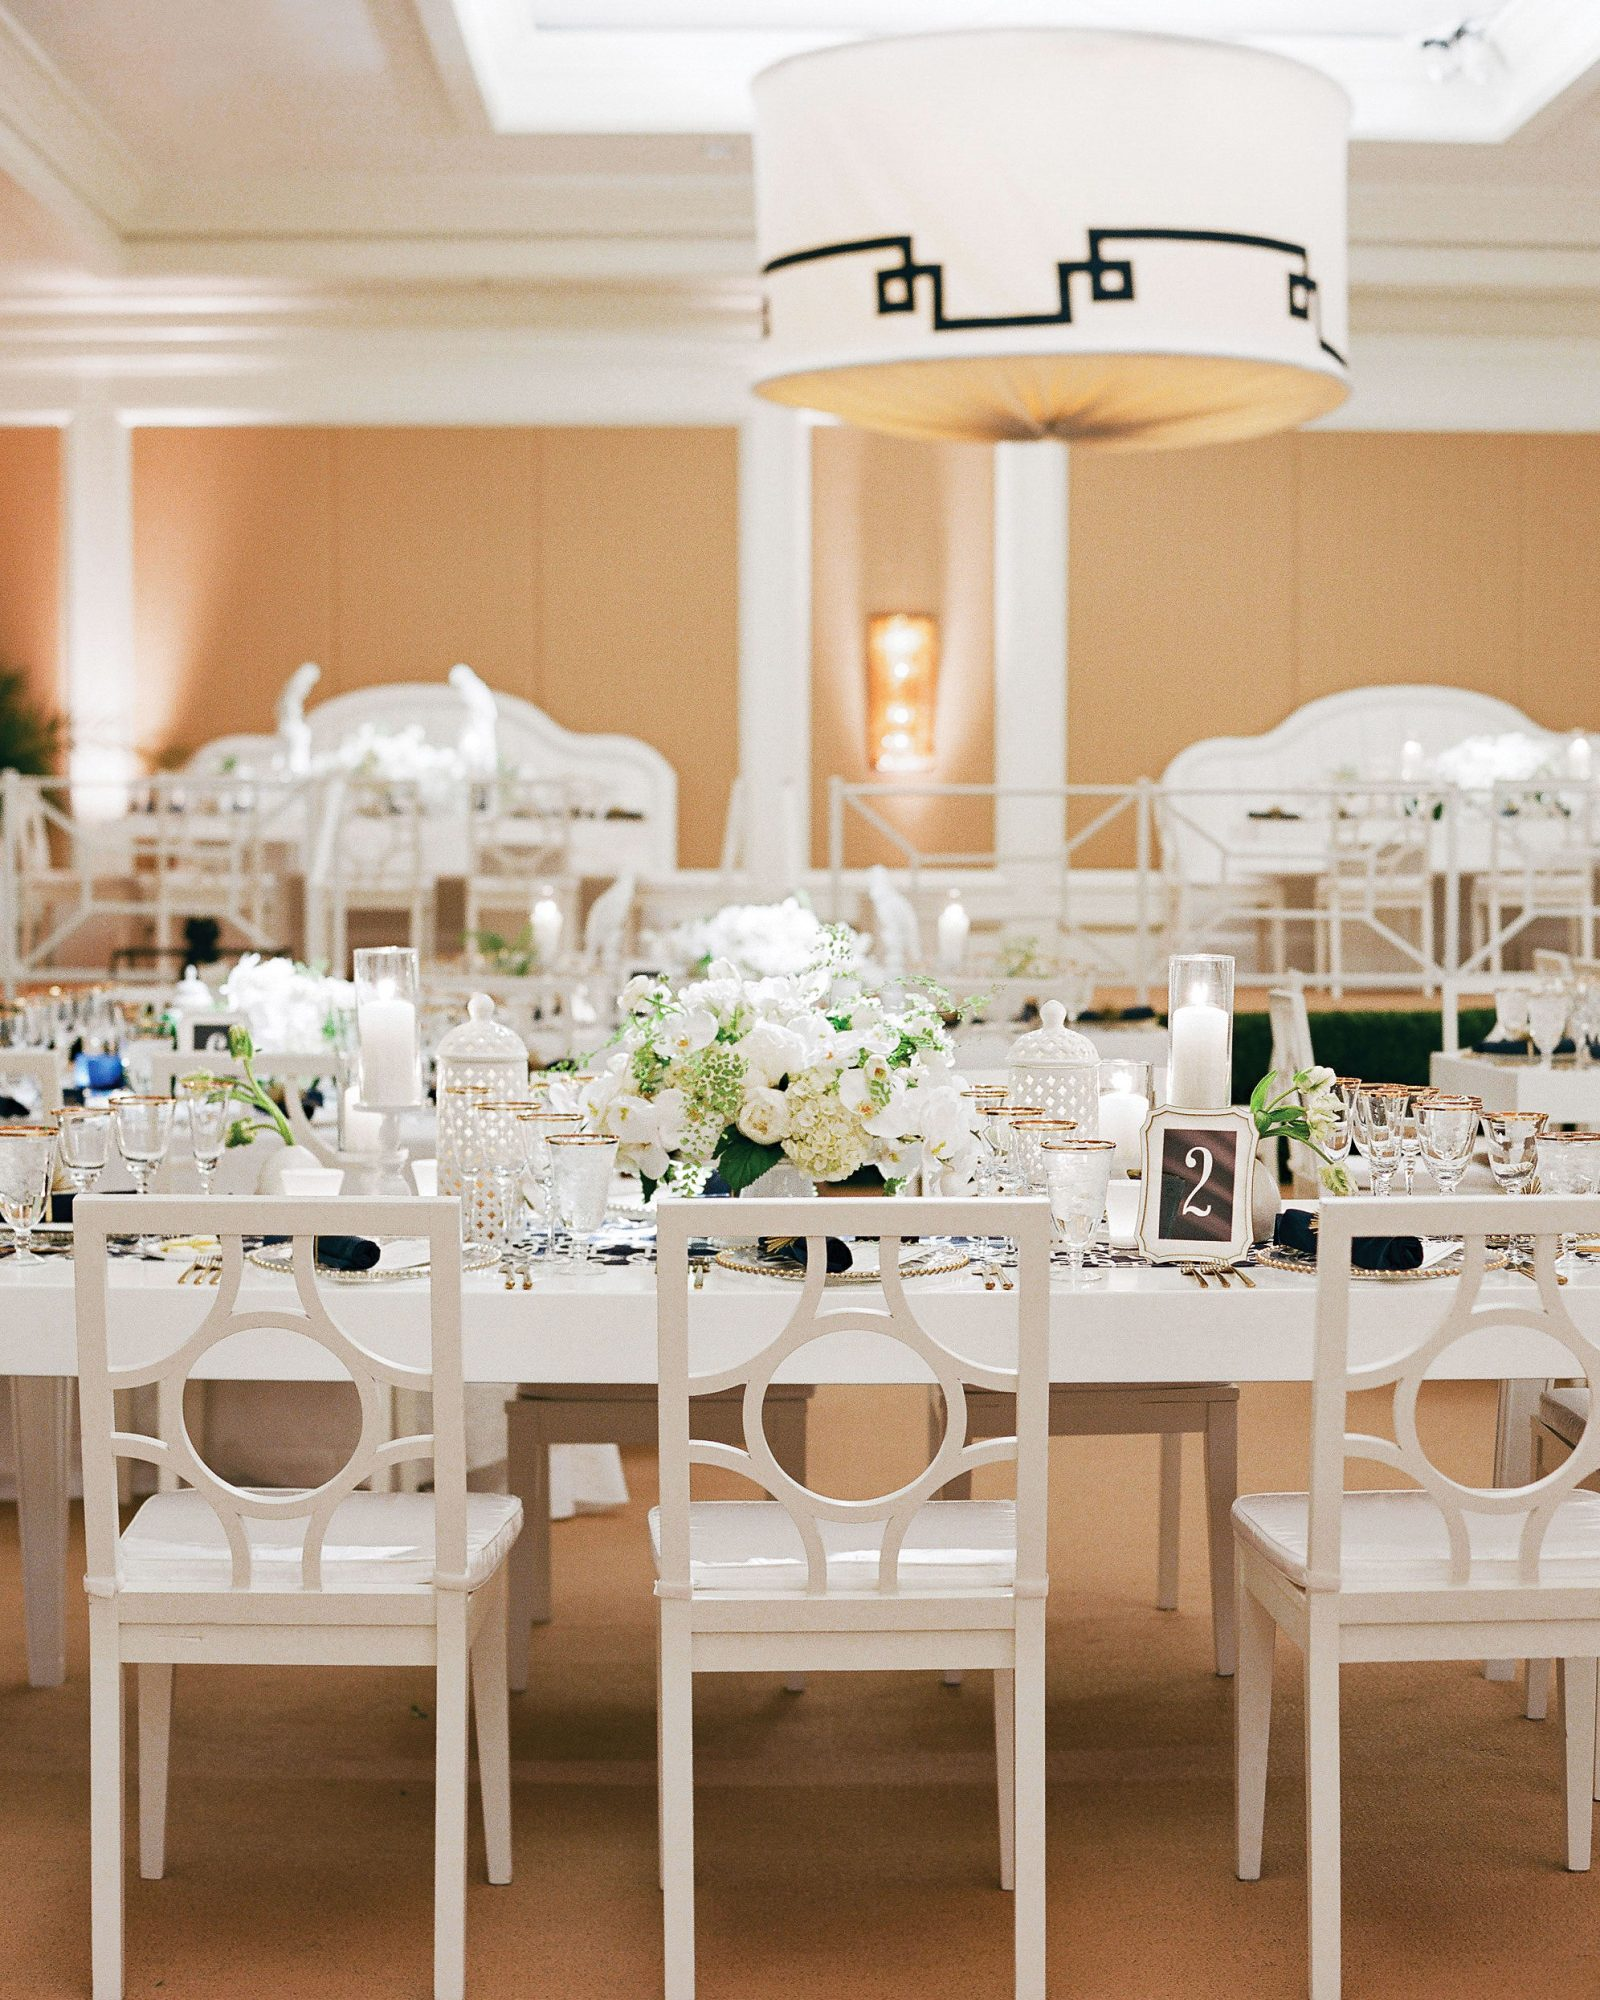 tali-mike-real-wedding-reception-tablescapes.jpg